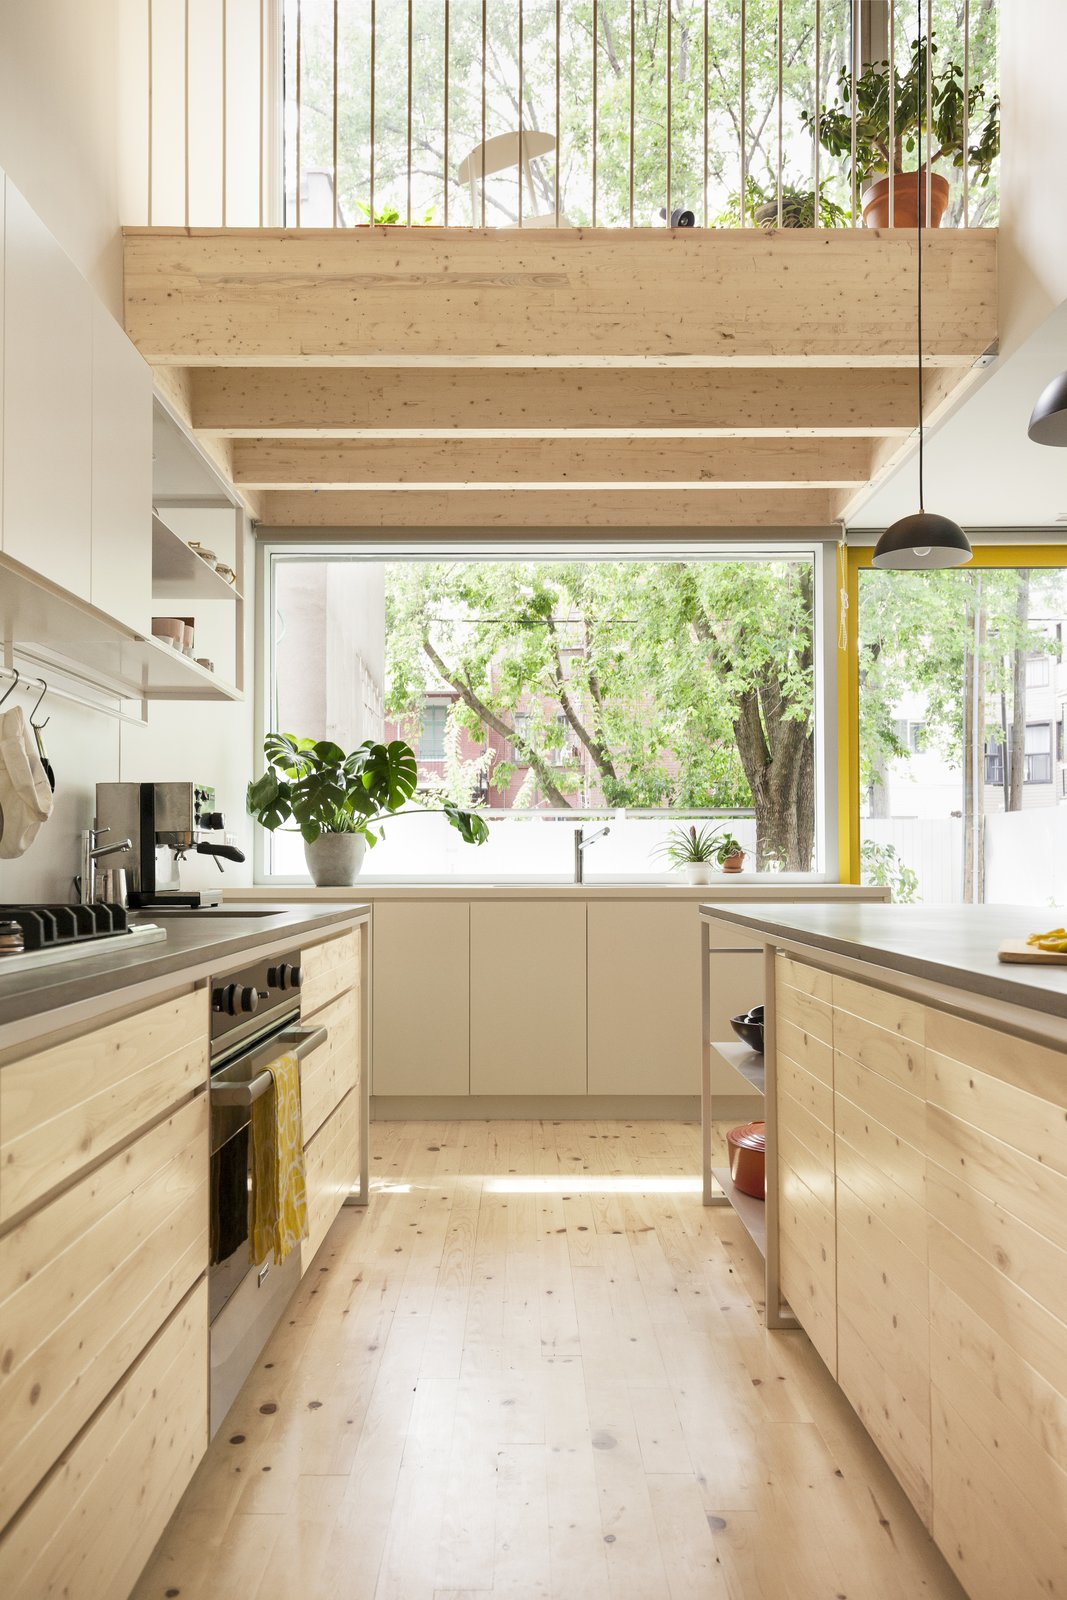 Kitchen, Wood Cabinet, Pendant Lighting, Light Hardwood Floor, Cooktops, Wall Oven, and Undermount Sink Pine has also been used in the ceiling beams.     Photo 4 of 8 in 7 Natural Cleaning Recipes You Can Whip Up in Minutes